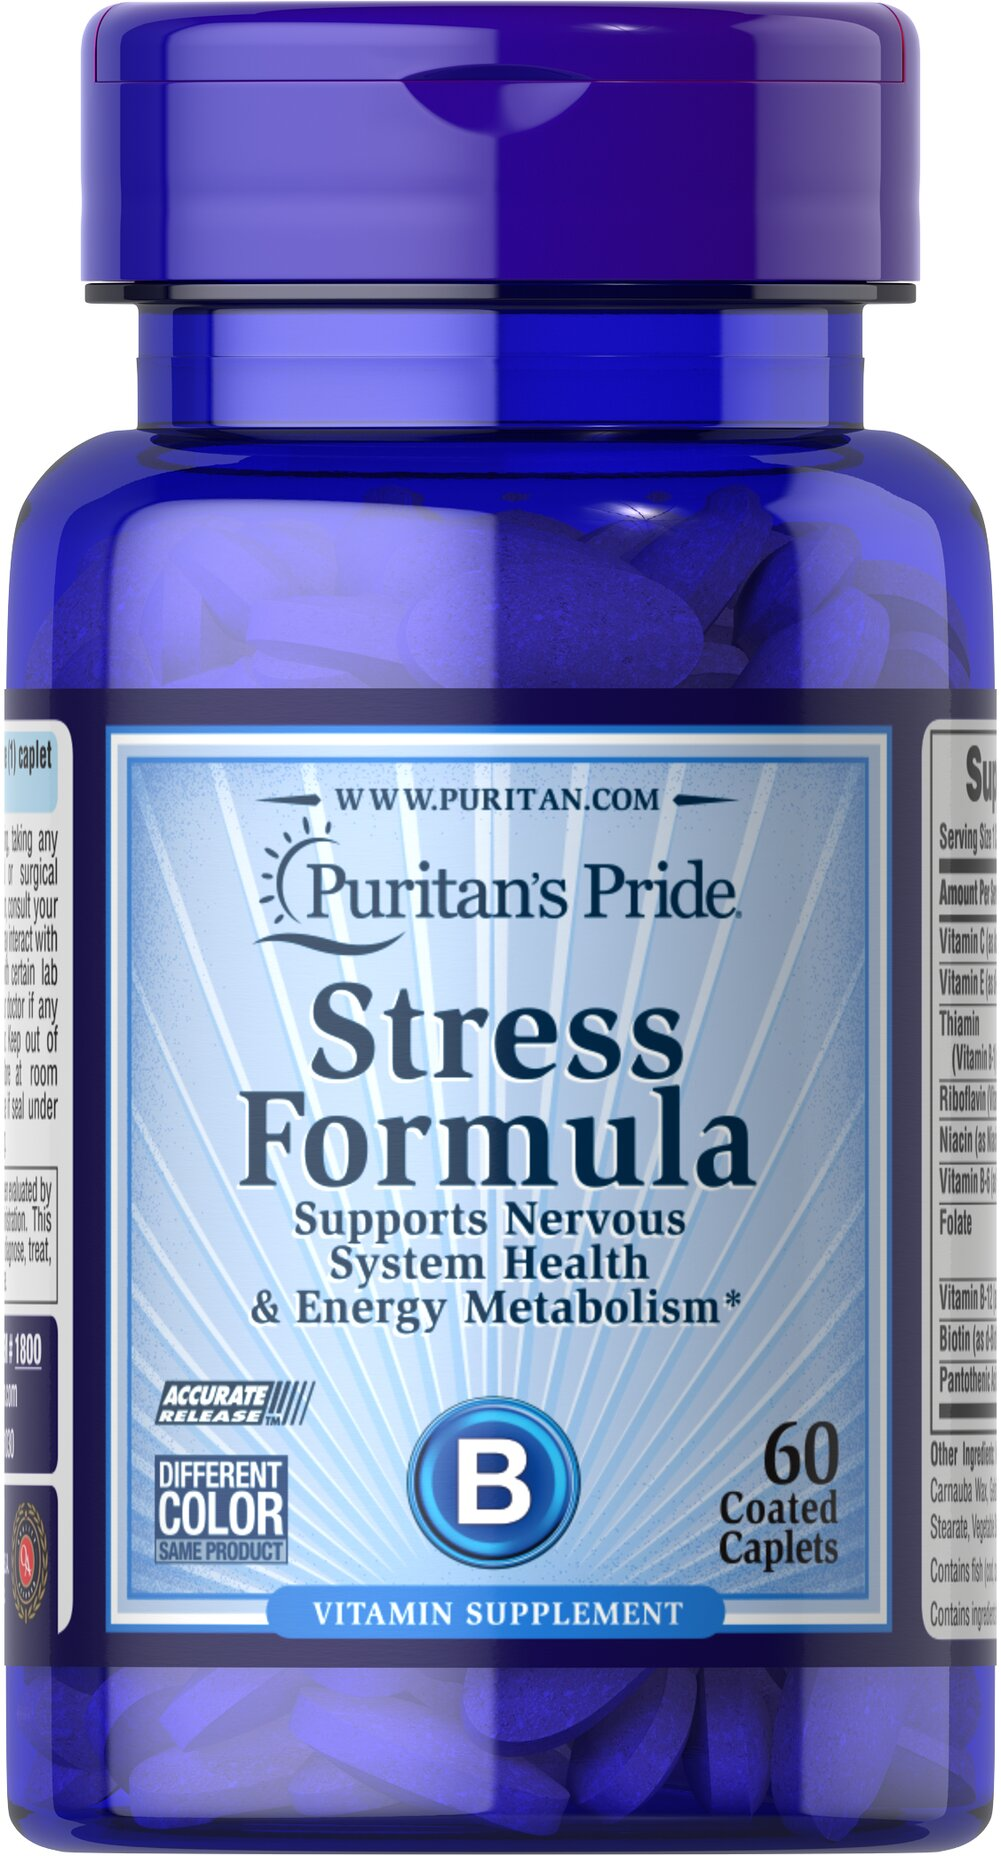 Stress Formula <p>Stress Formula promotes energy metabolism and nervous system health.** Our exclusive combination contains all eight B-Complex vitamins plus Vitamins C and E. The B Complex is made up of several vitamins that work well together to support nervous system health and energy metabolism.** Vitamins C and E promote antioxidant protection and immune system health.**</p>  <p>Compare and save!</p> 60 Caplets  $10.29